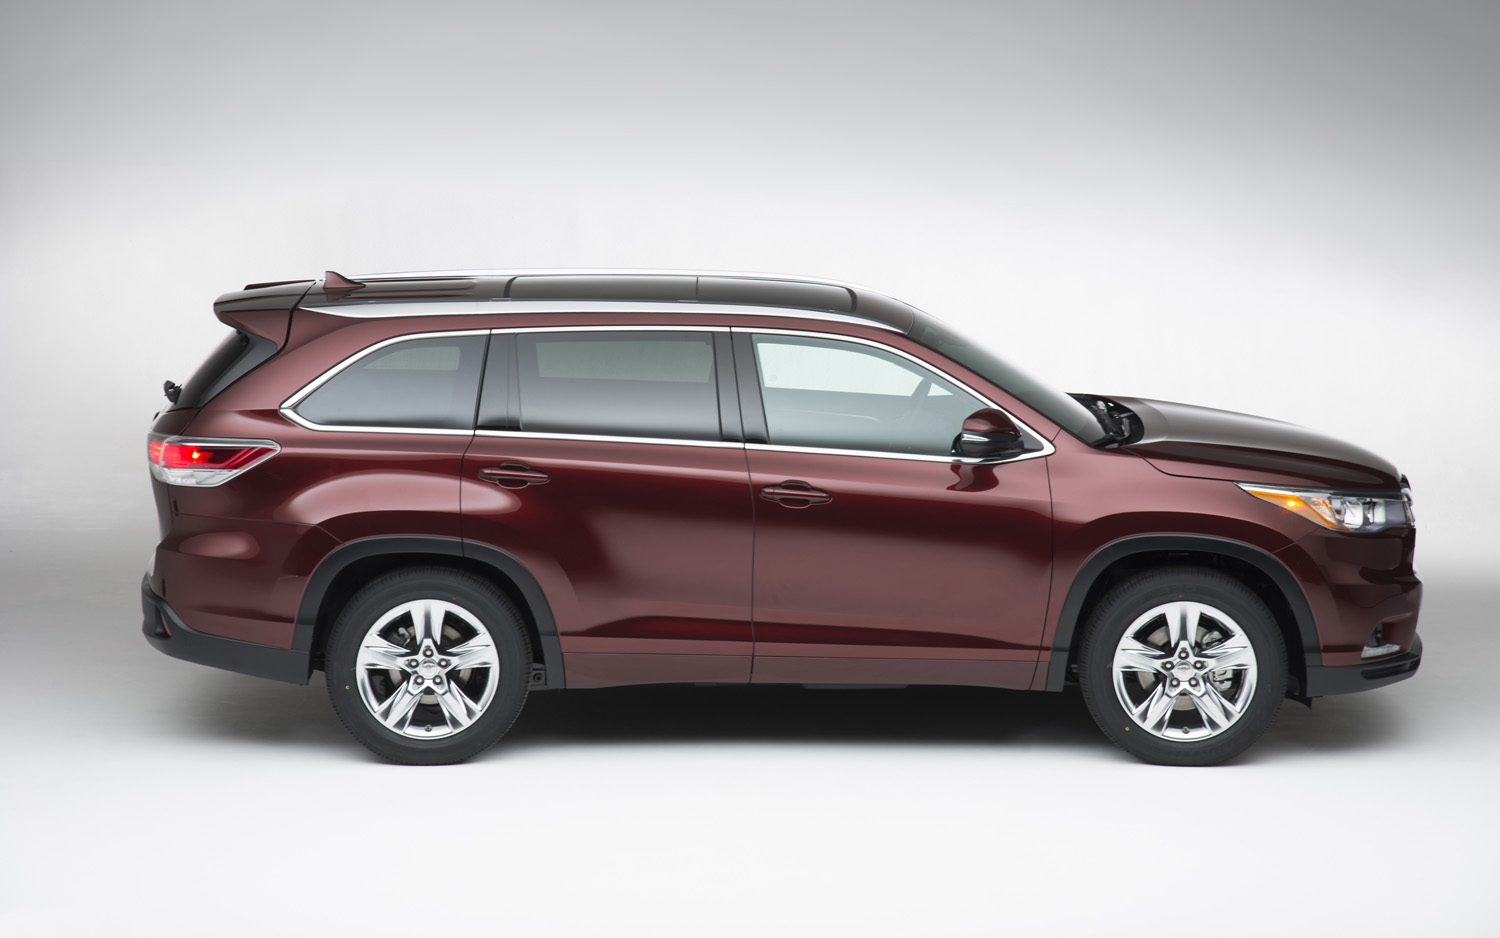 2014 toyota highlander exterior specs against pilot explorer new cars reviews Toyota highlander 2014 exterior